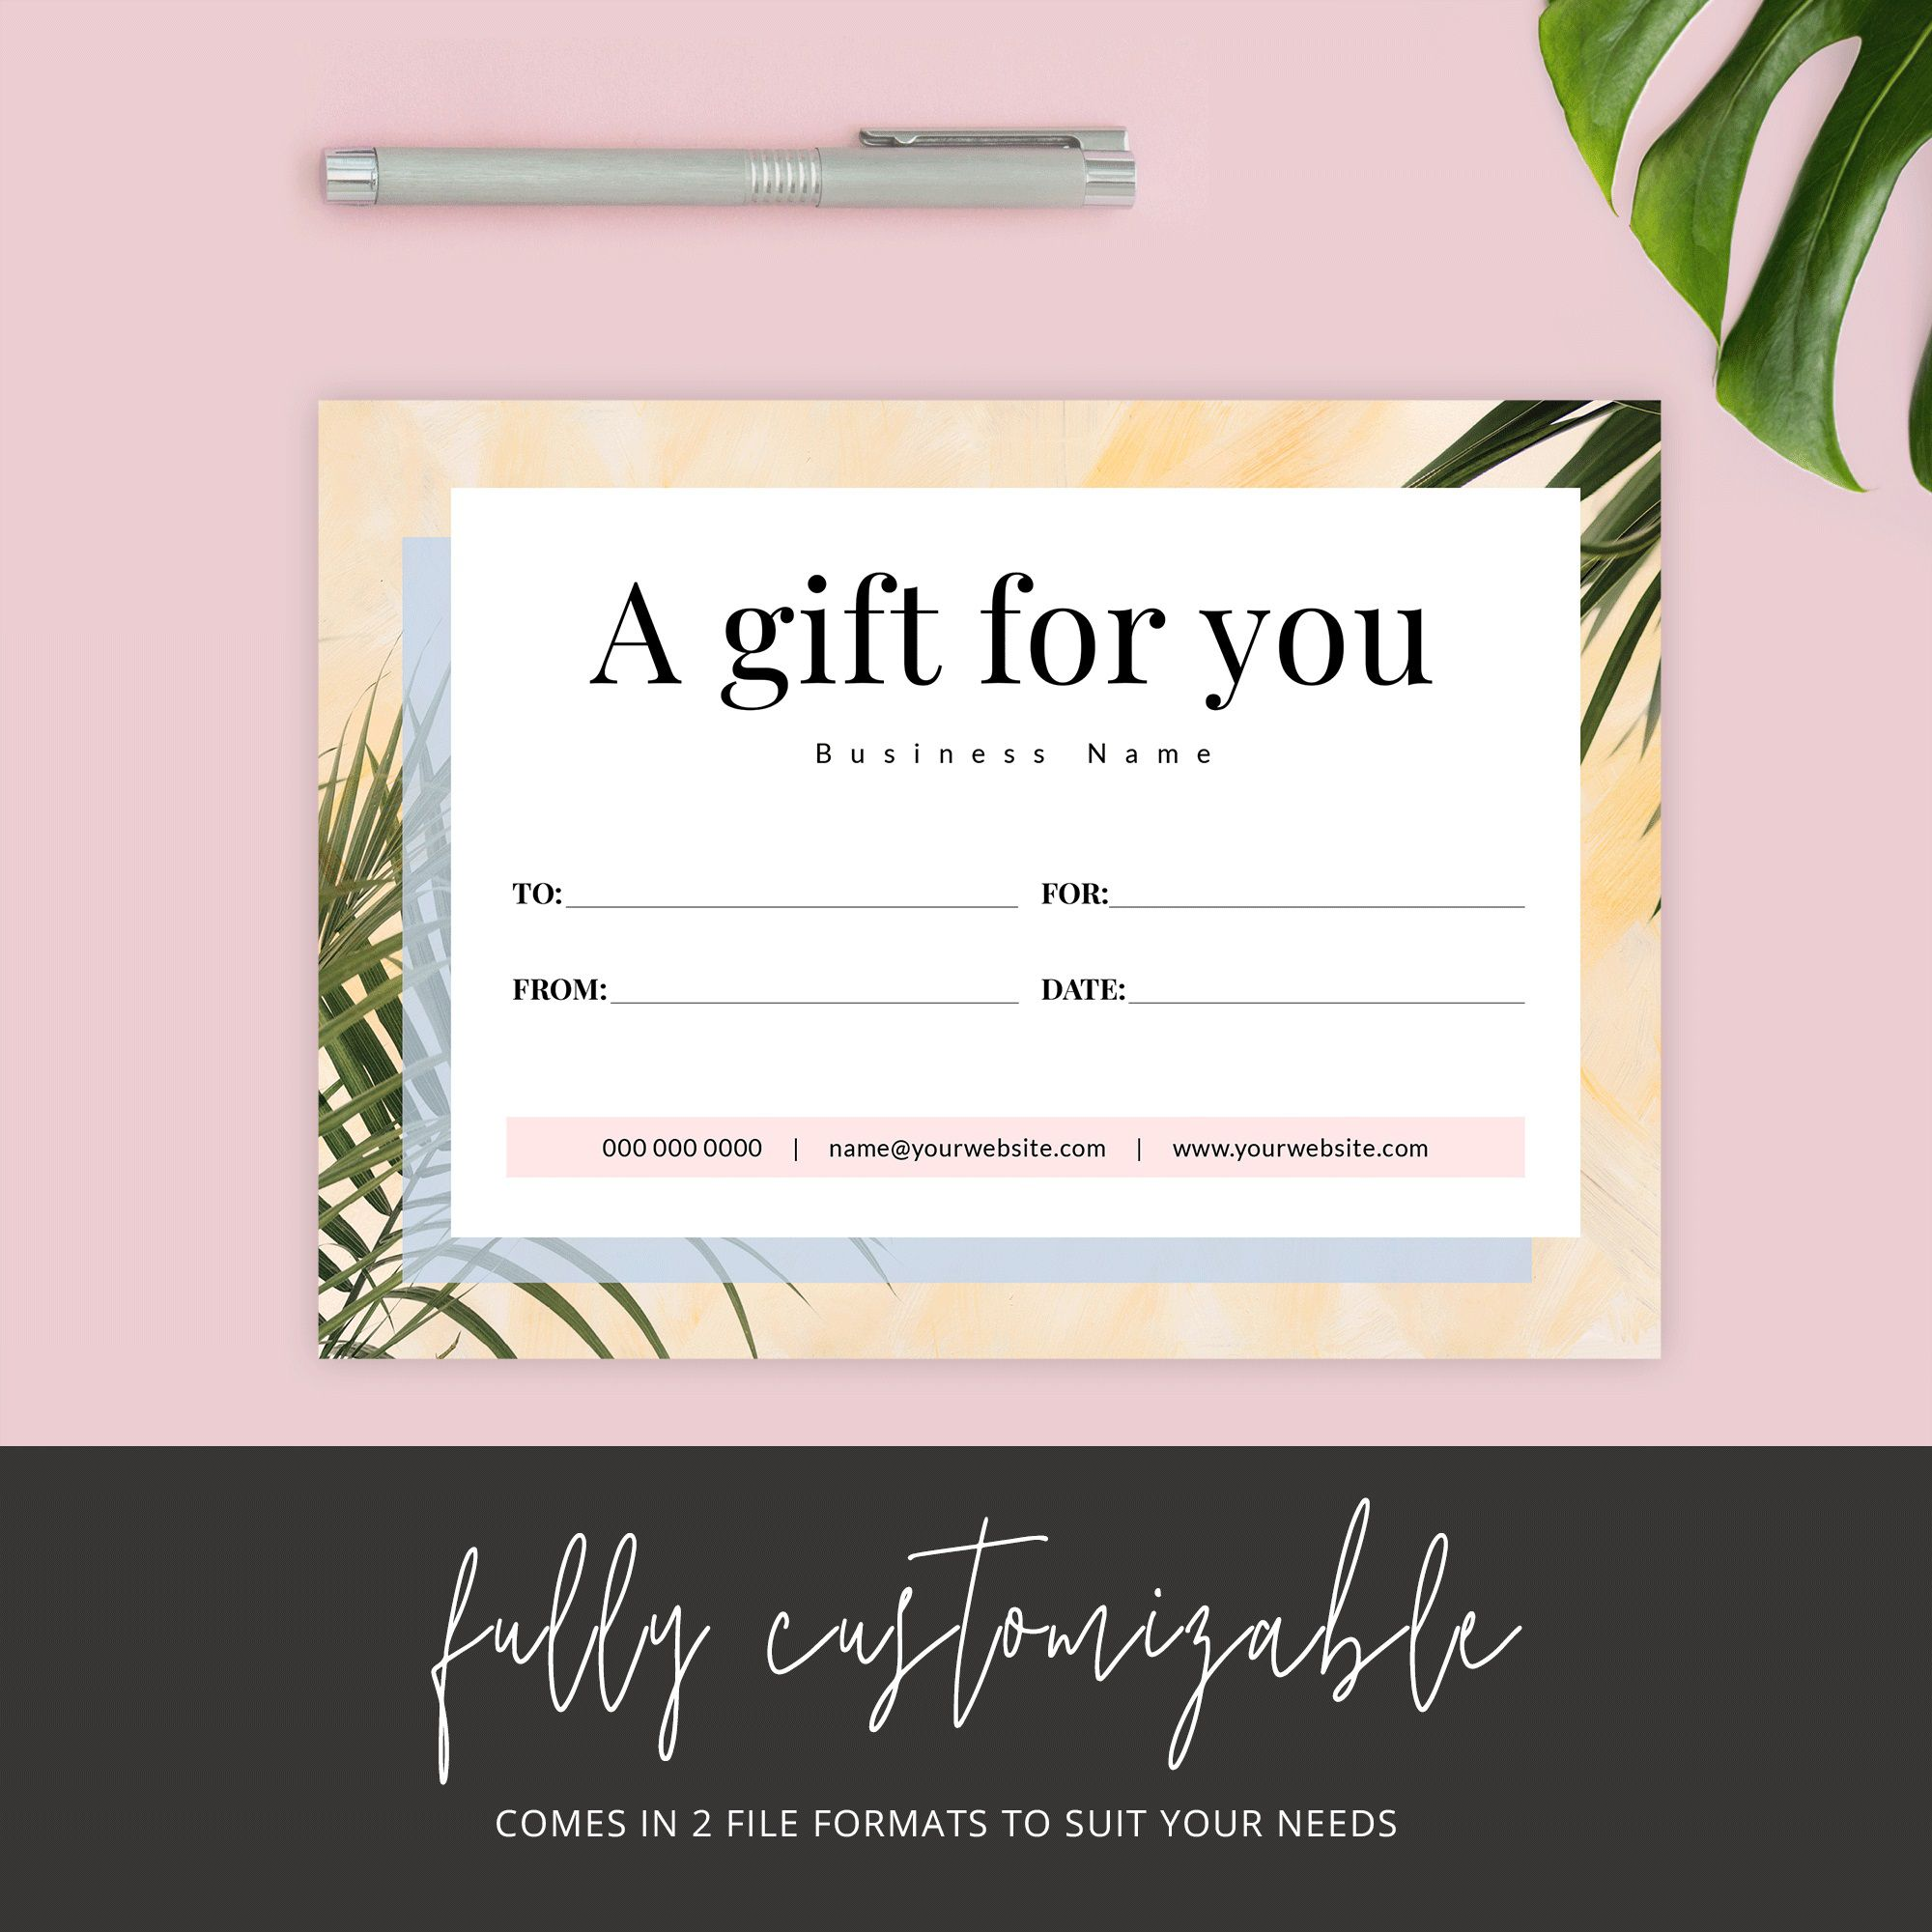 008 Remarkable Template For Gift Certificate High Def  Voucher Word Free Printable InFull